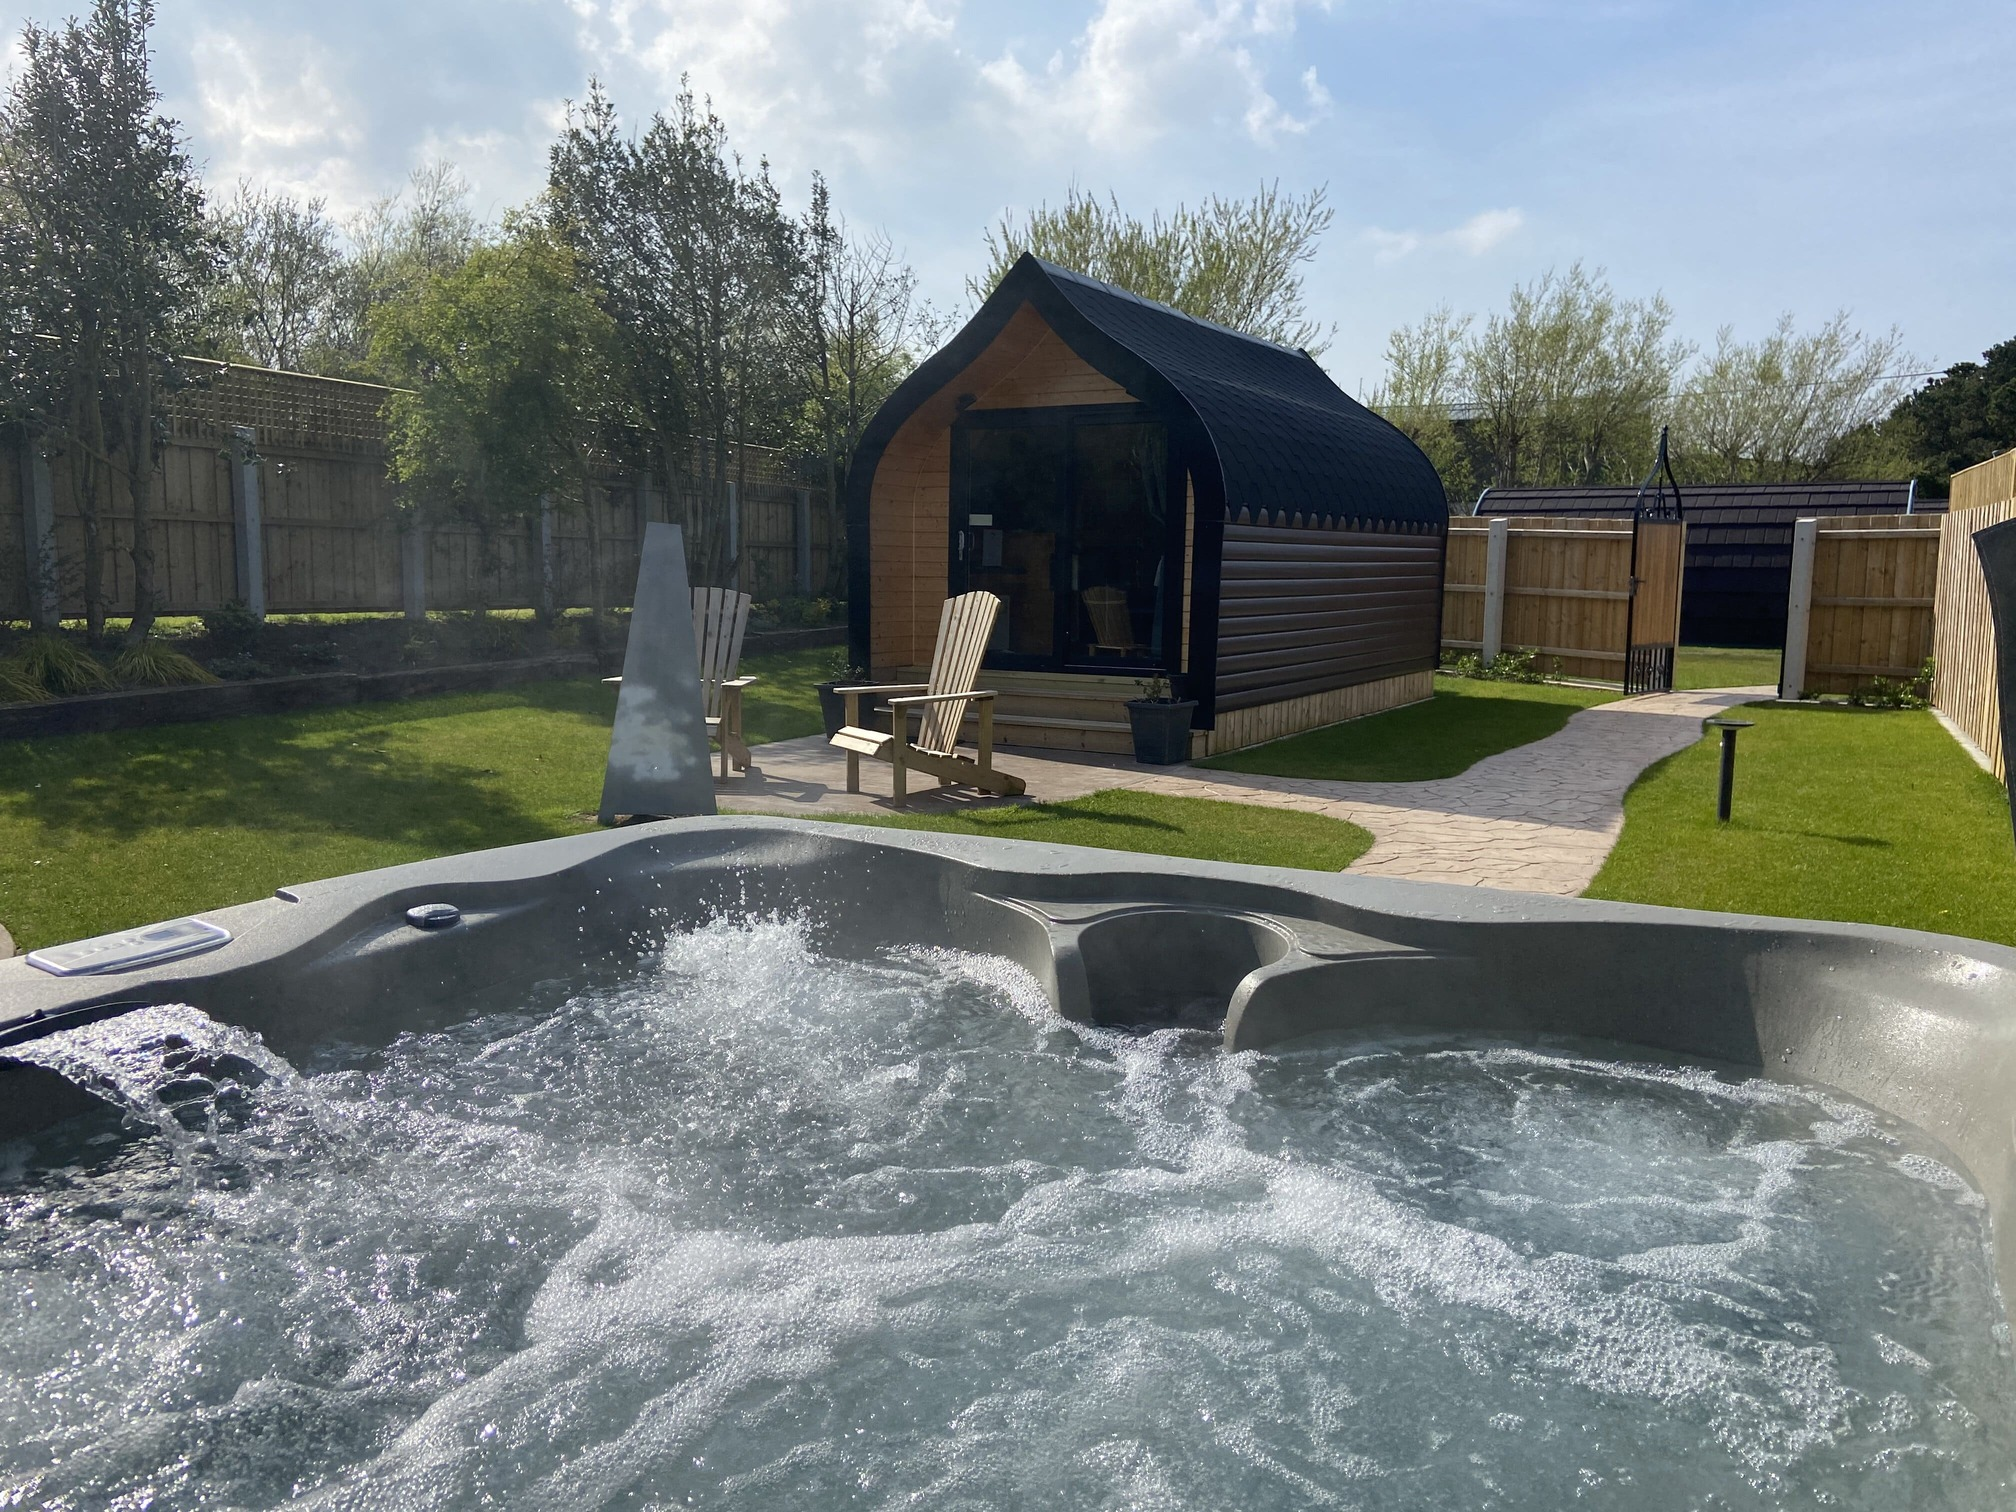 'Binevenagh Hideaway' with Private Hot tub